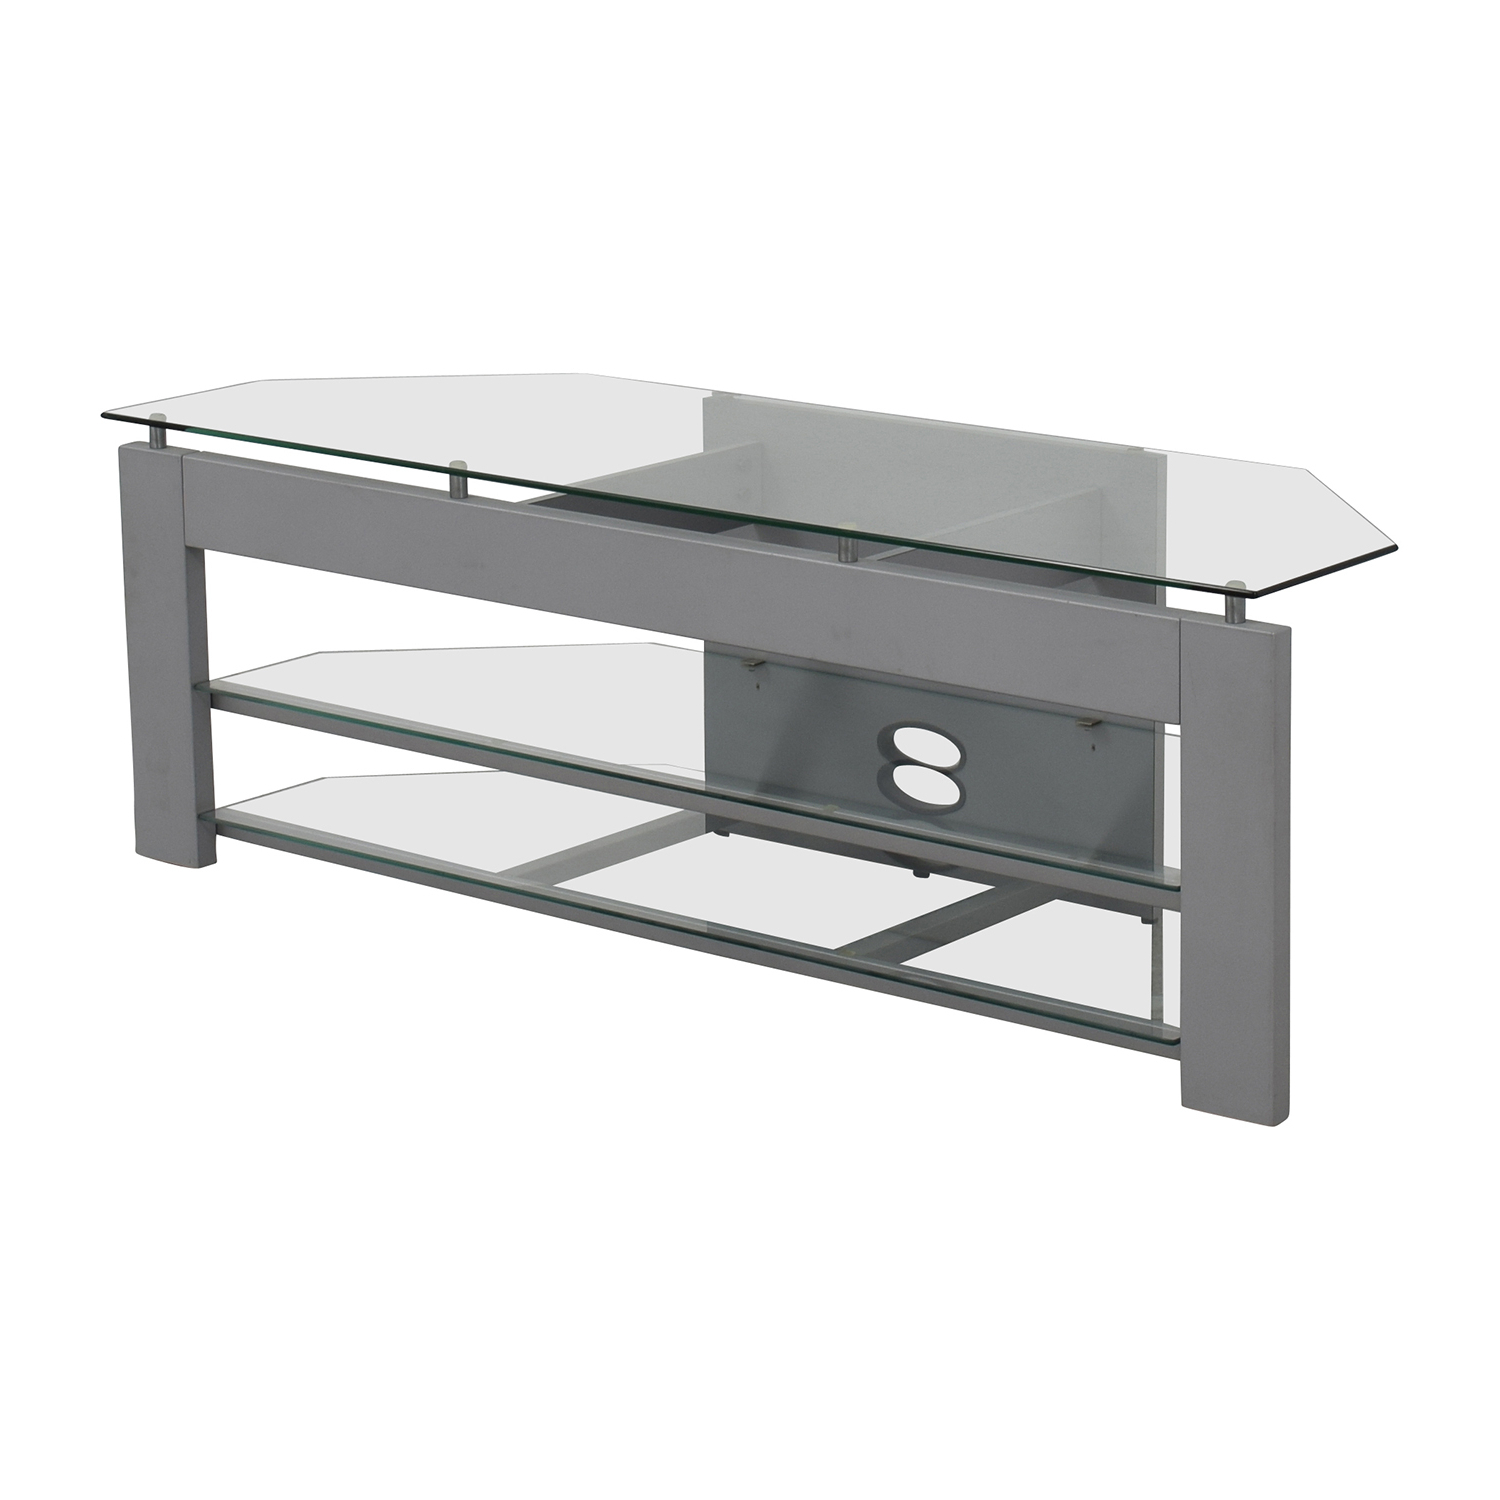 [%87% Off – Silver And Glass Tv Stand / Storage For Favorite Glass Tv Stands|glass Tv Stands With Best And Newest 87% Off – Silver And Glass Tv Stand / Storage|latest Glass Tv Stands With 87% Off – Silver And Glass Tv Stand / Storage|well Known 87% Off – Silver And Glass Tv Stand / Storage With Glass Tv Stands%] (View 16 of 20)